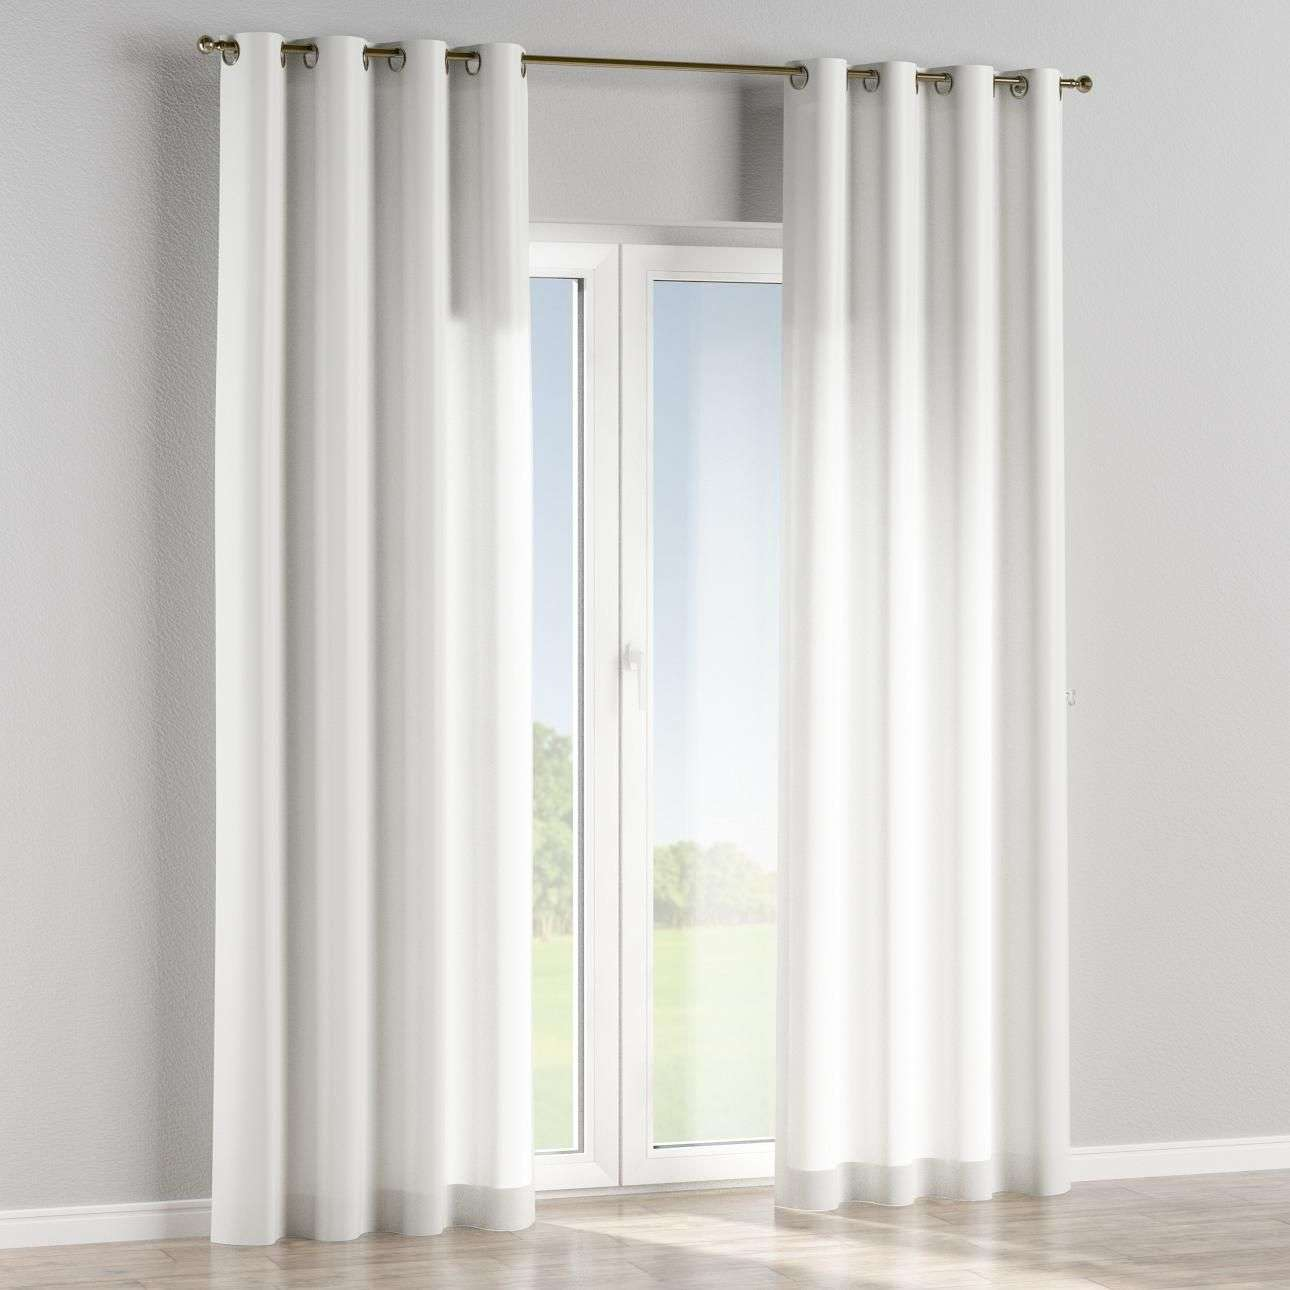 Eyelet curtains in collection Christmas , fabric: 630-29